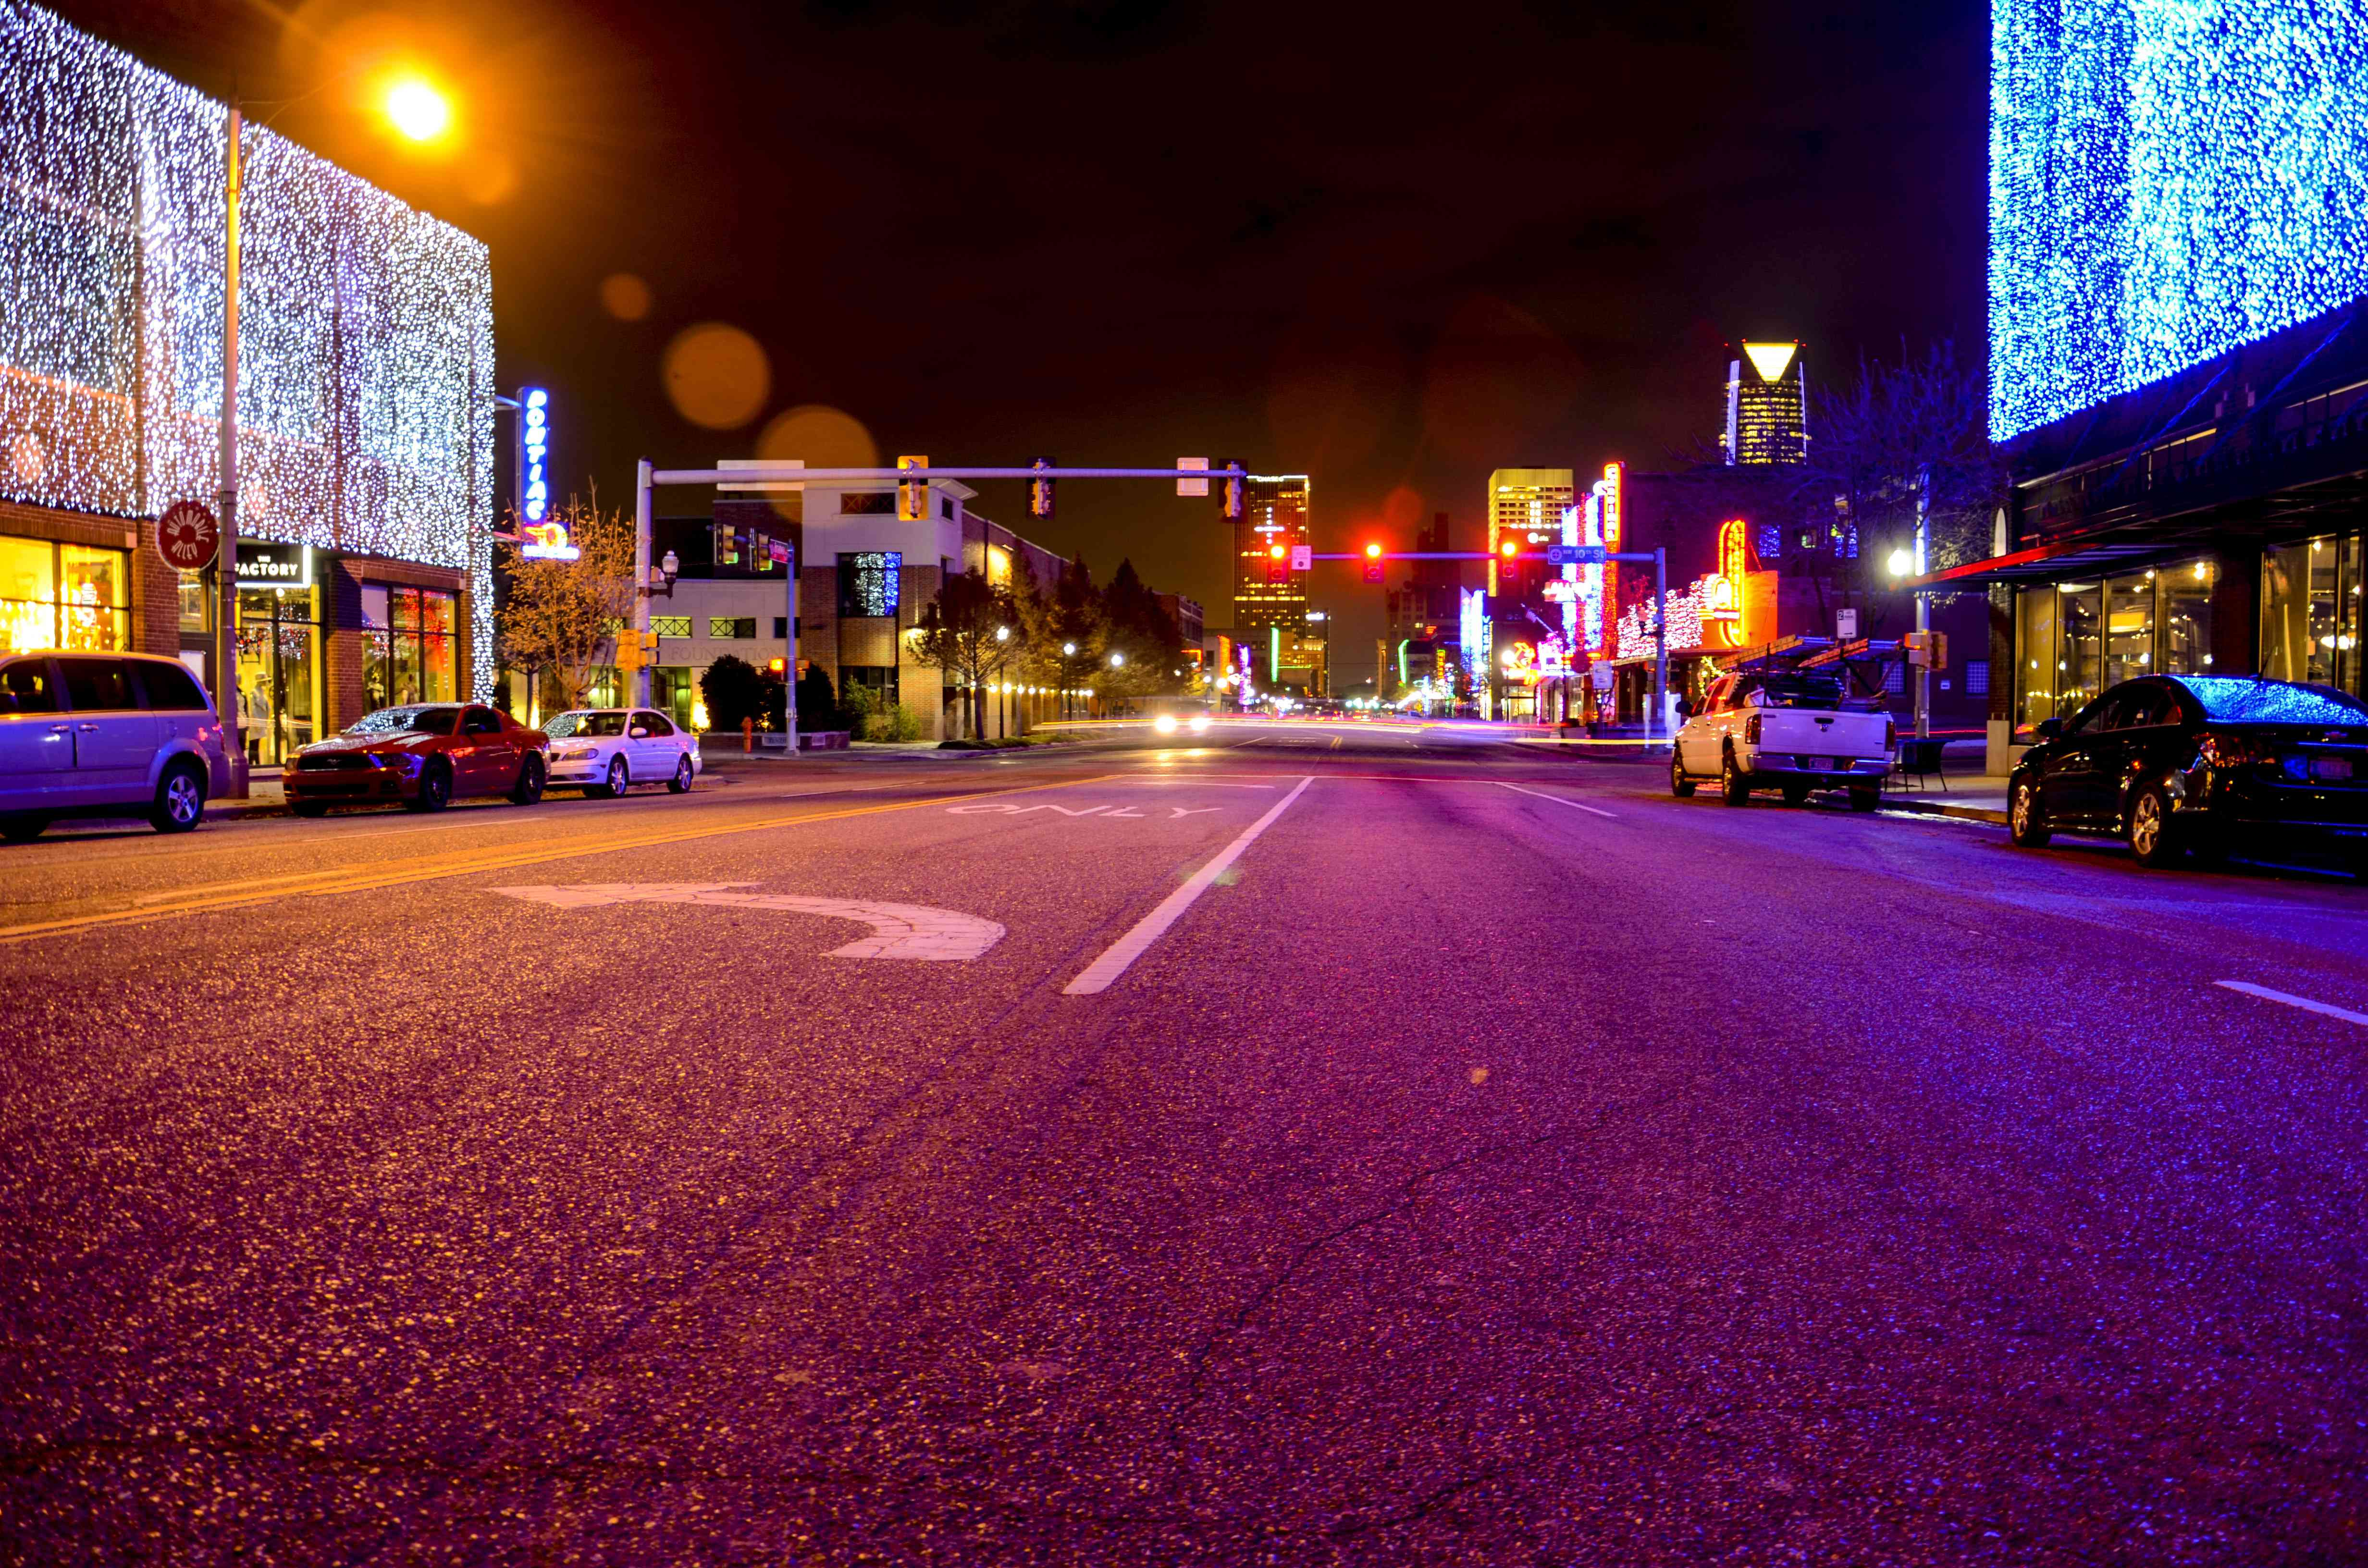 Lights sparkle during the holiday season in Automobile Alley in Oklahoma City.